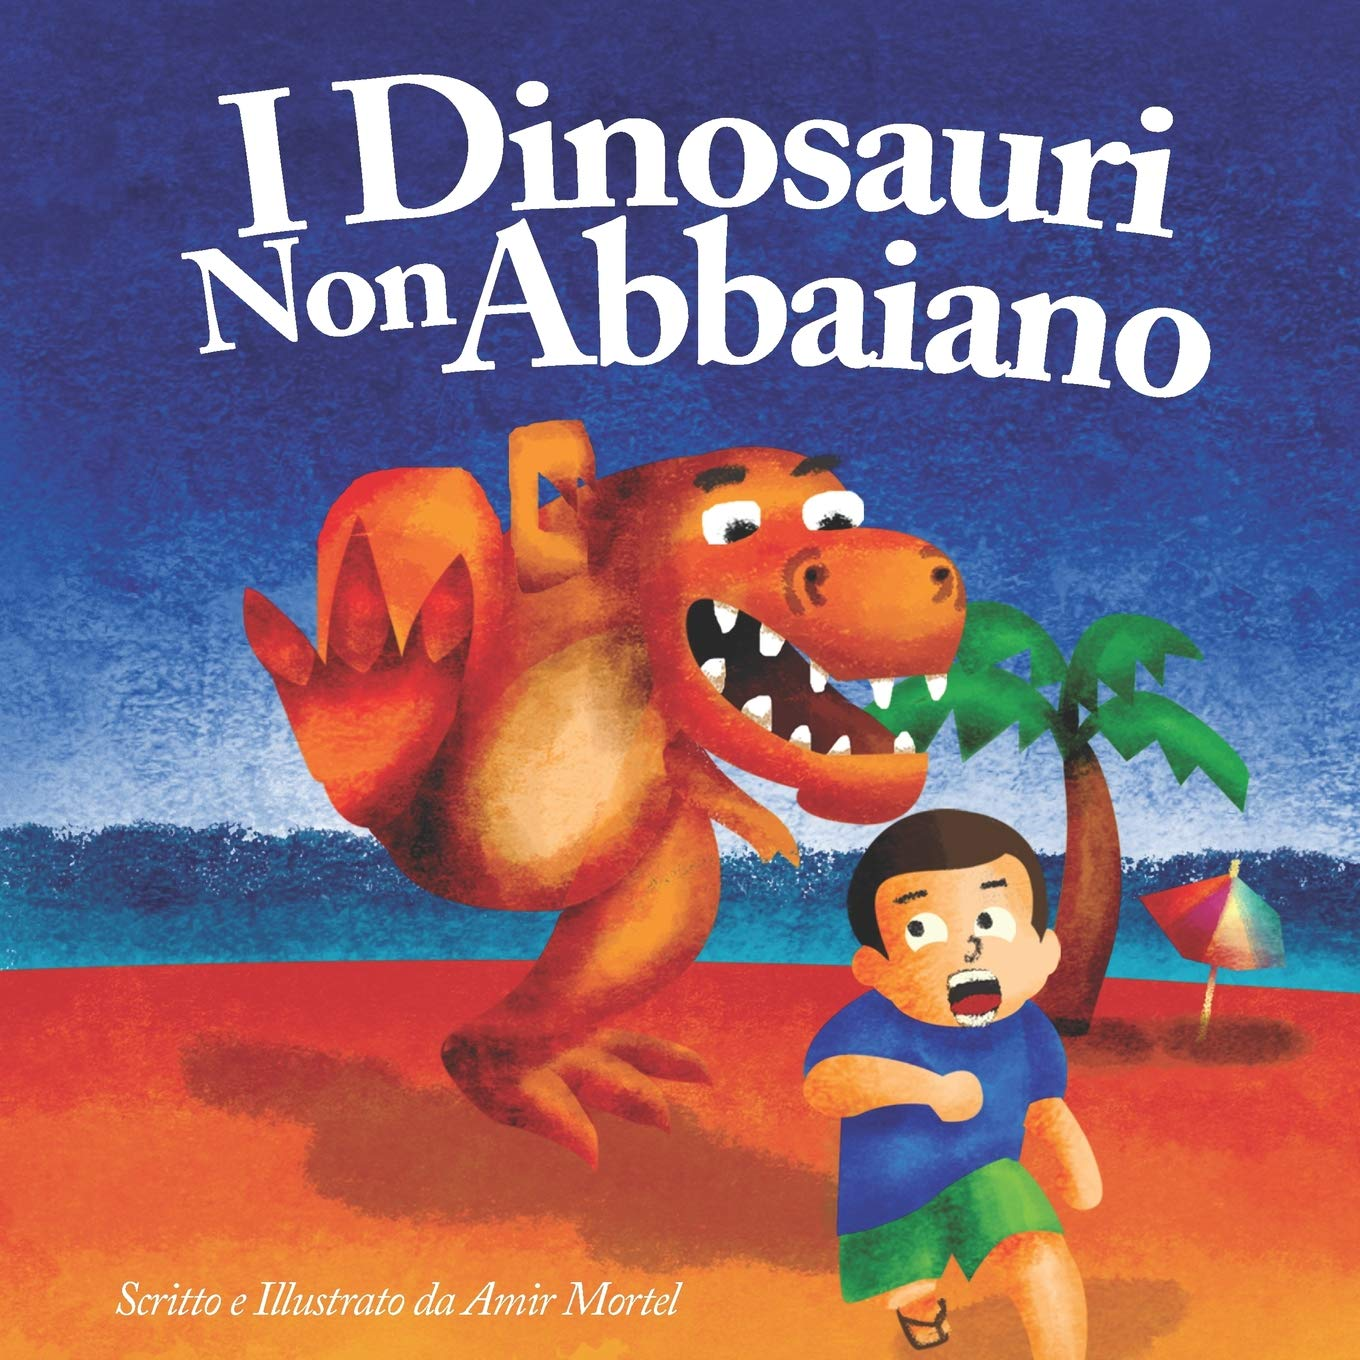 I Dinosauri Non Abbaiano   Dinosaurs Don't Bark   Italian Version  Published By Funky Dreamer Storytime